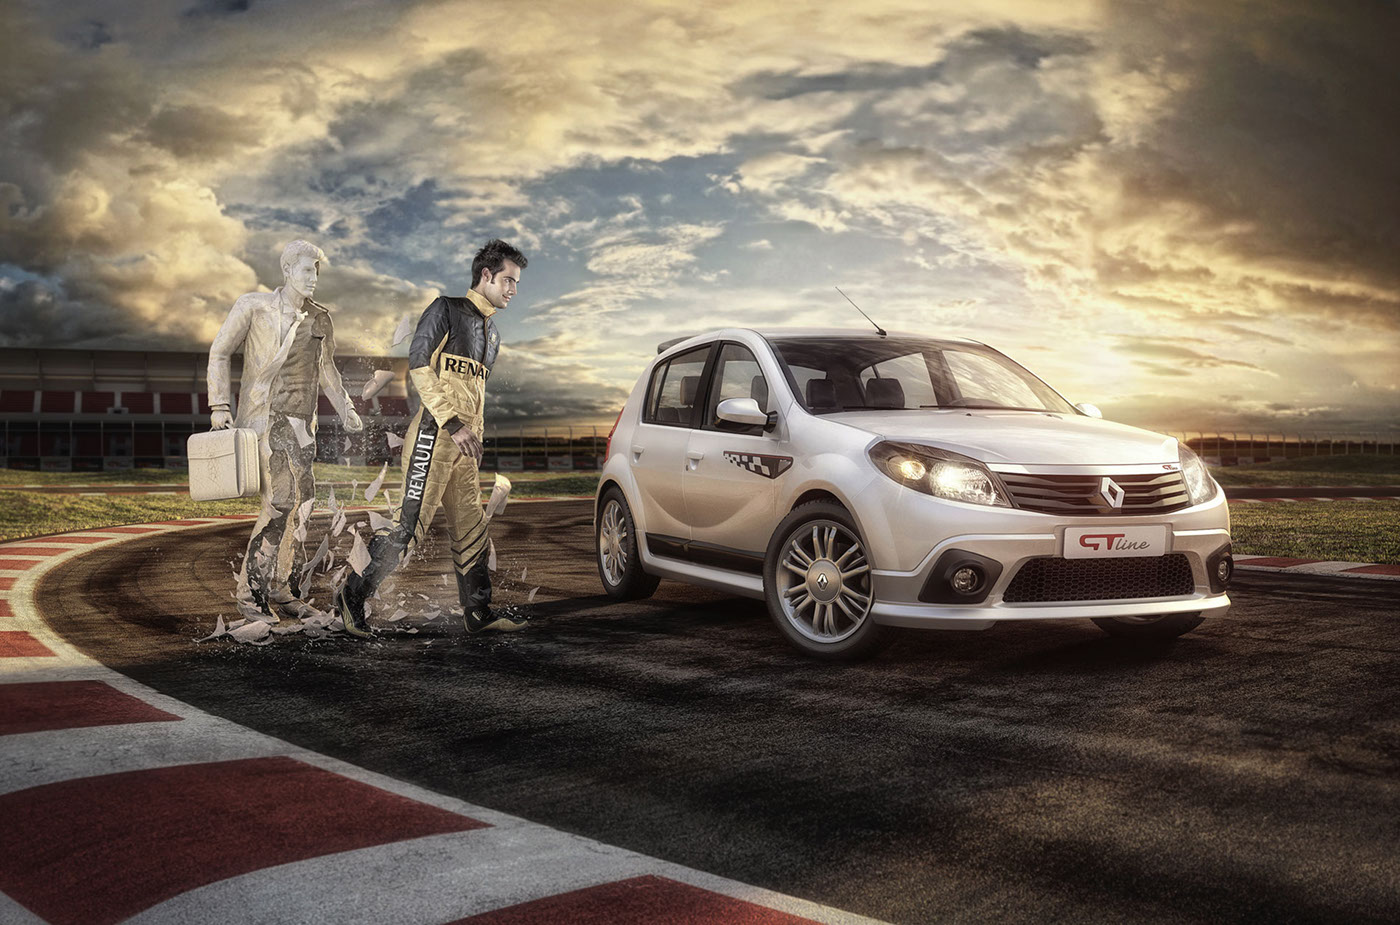 CGI, 3D, digital retouching - RENAULT